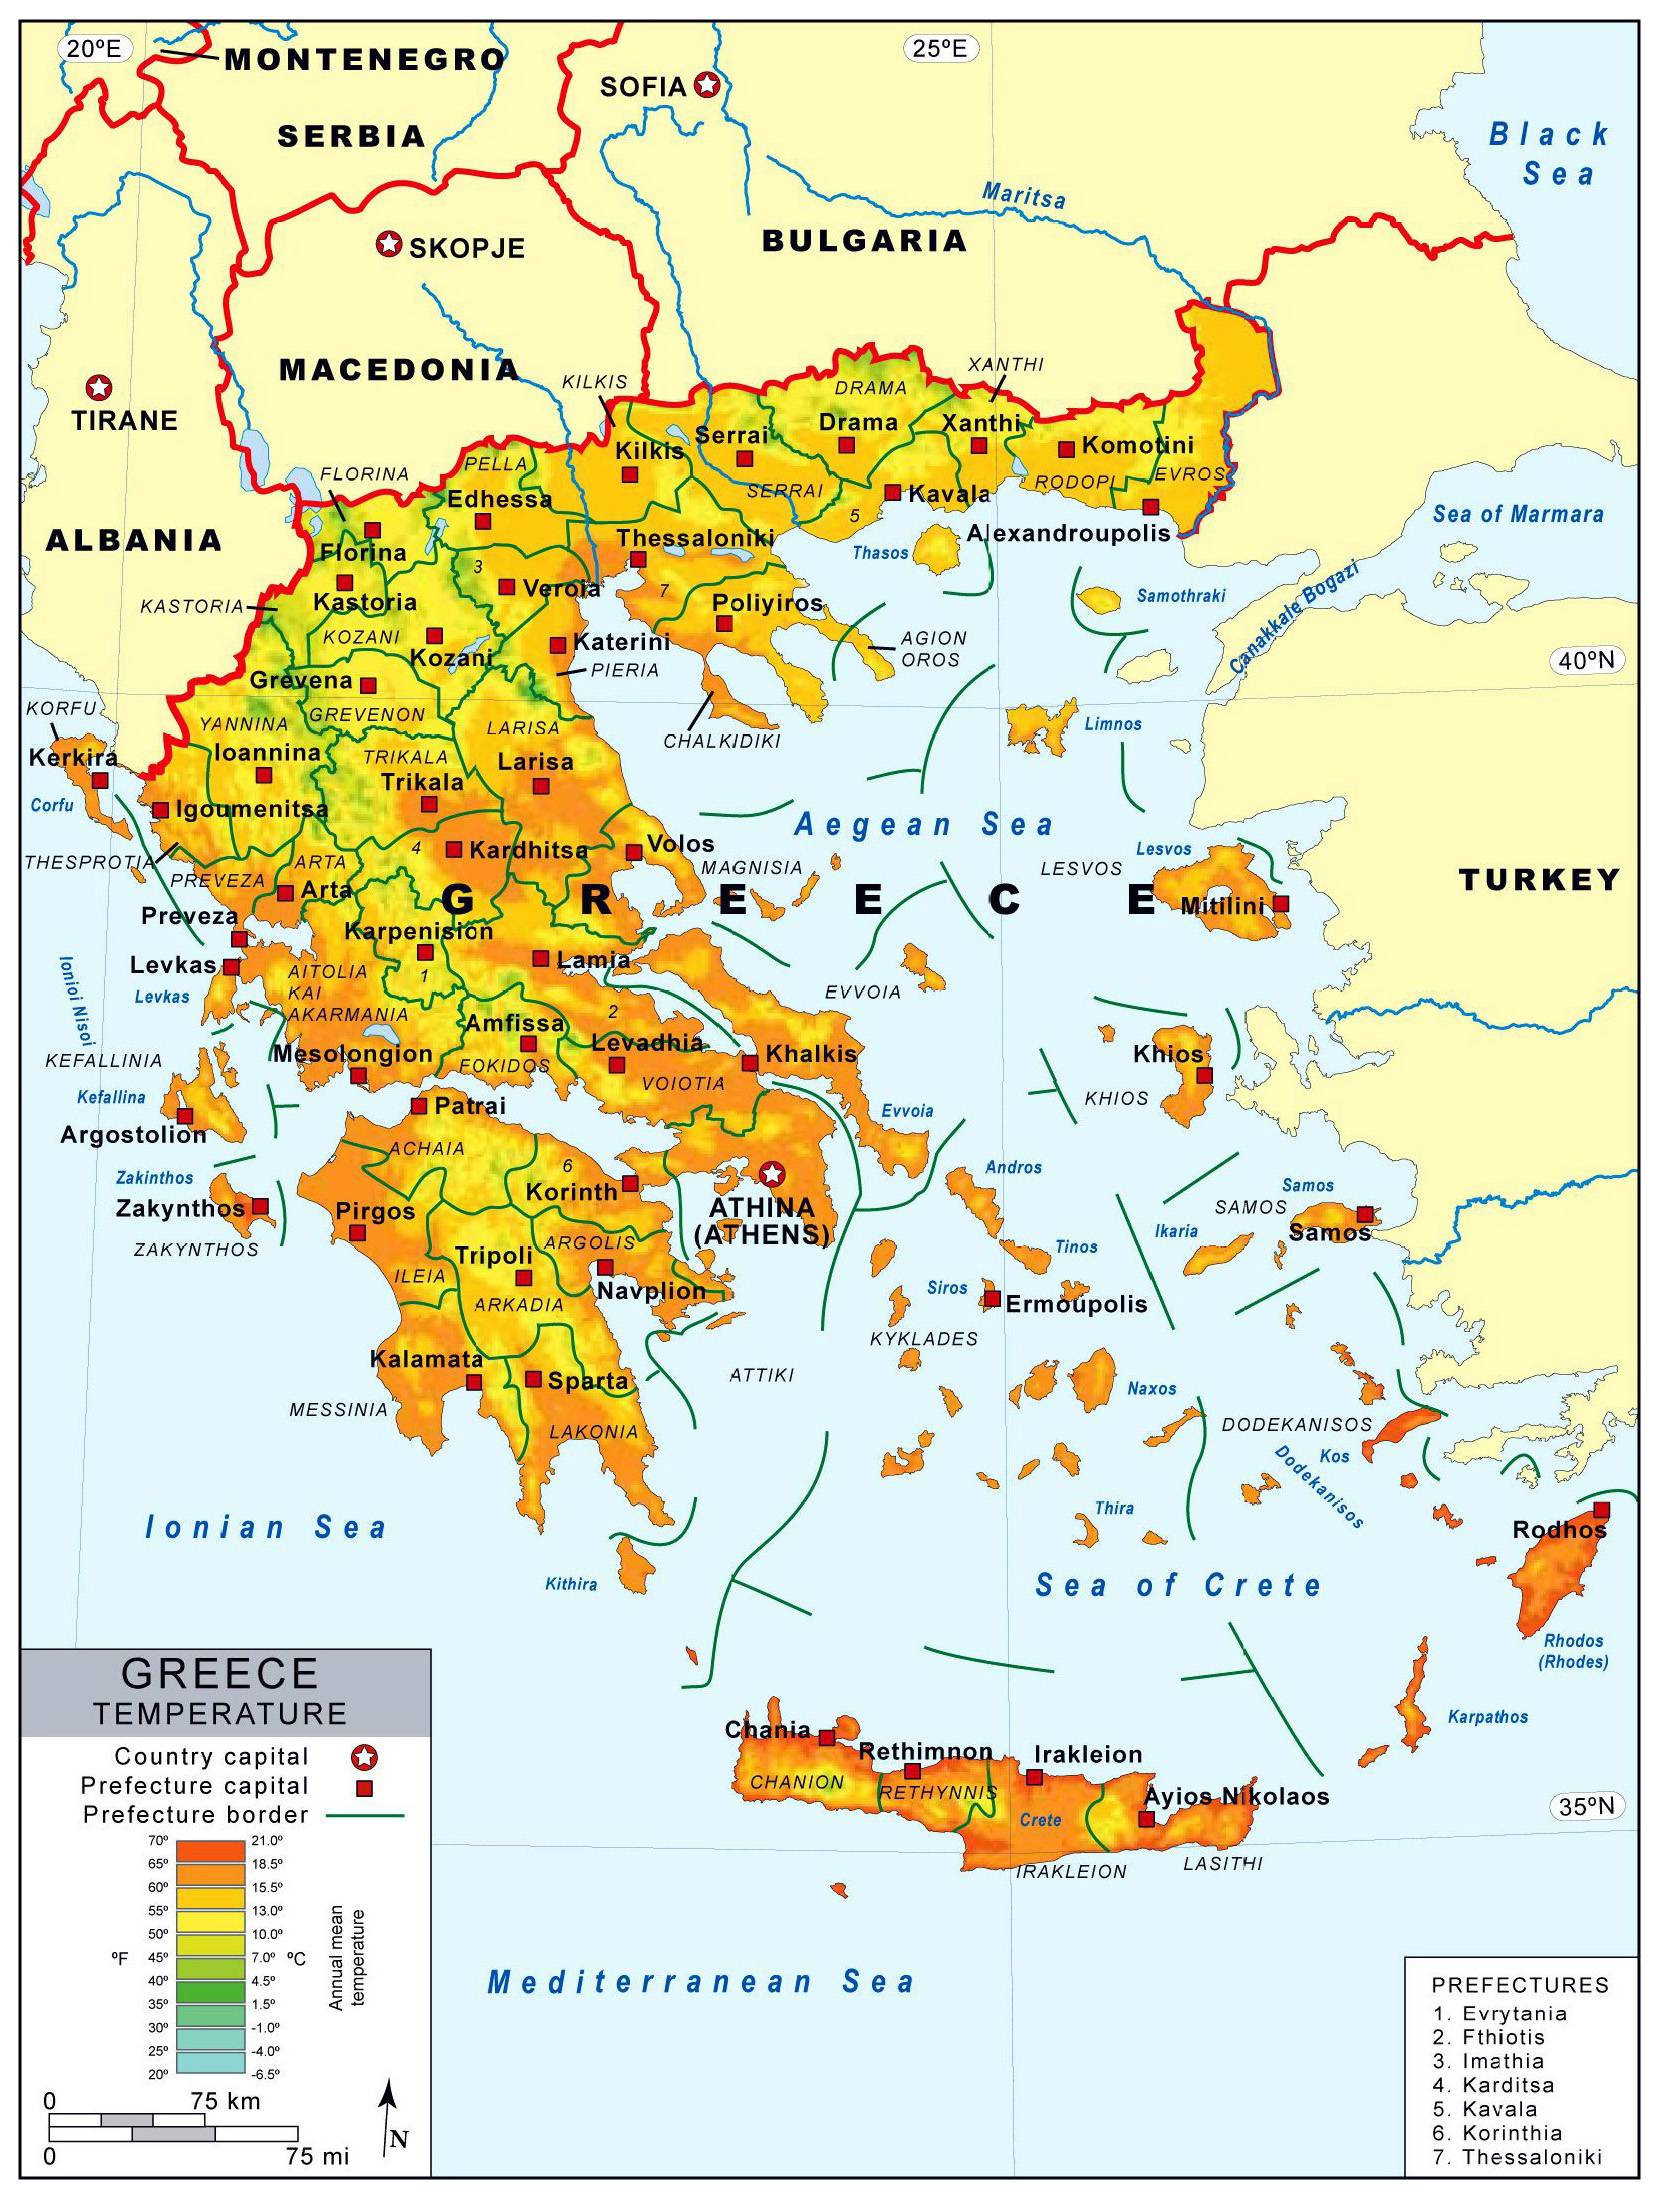 Detailed temperature map of Greece with prefectures and major cities